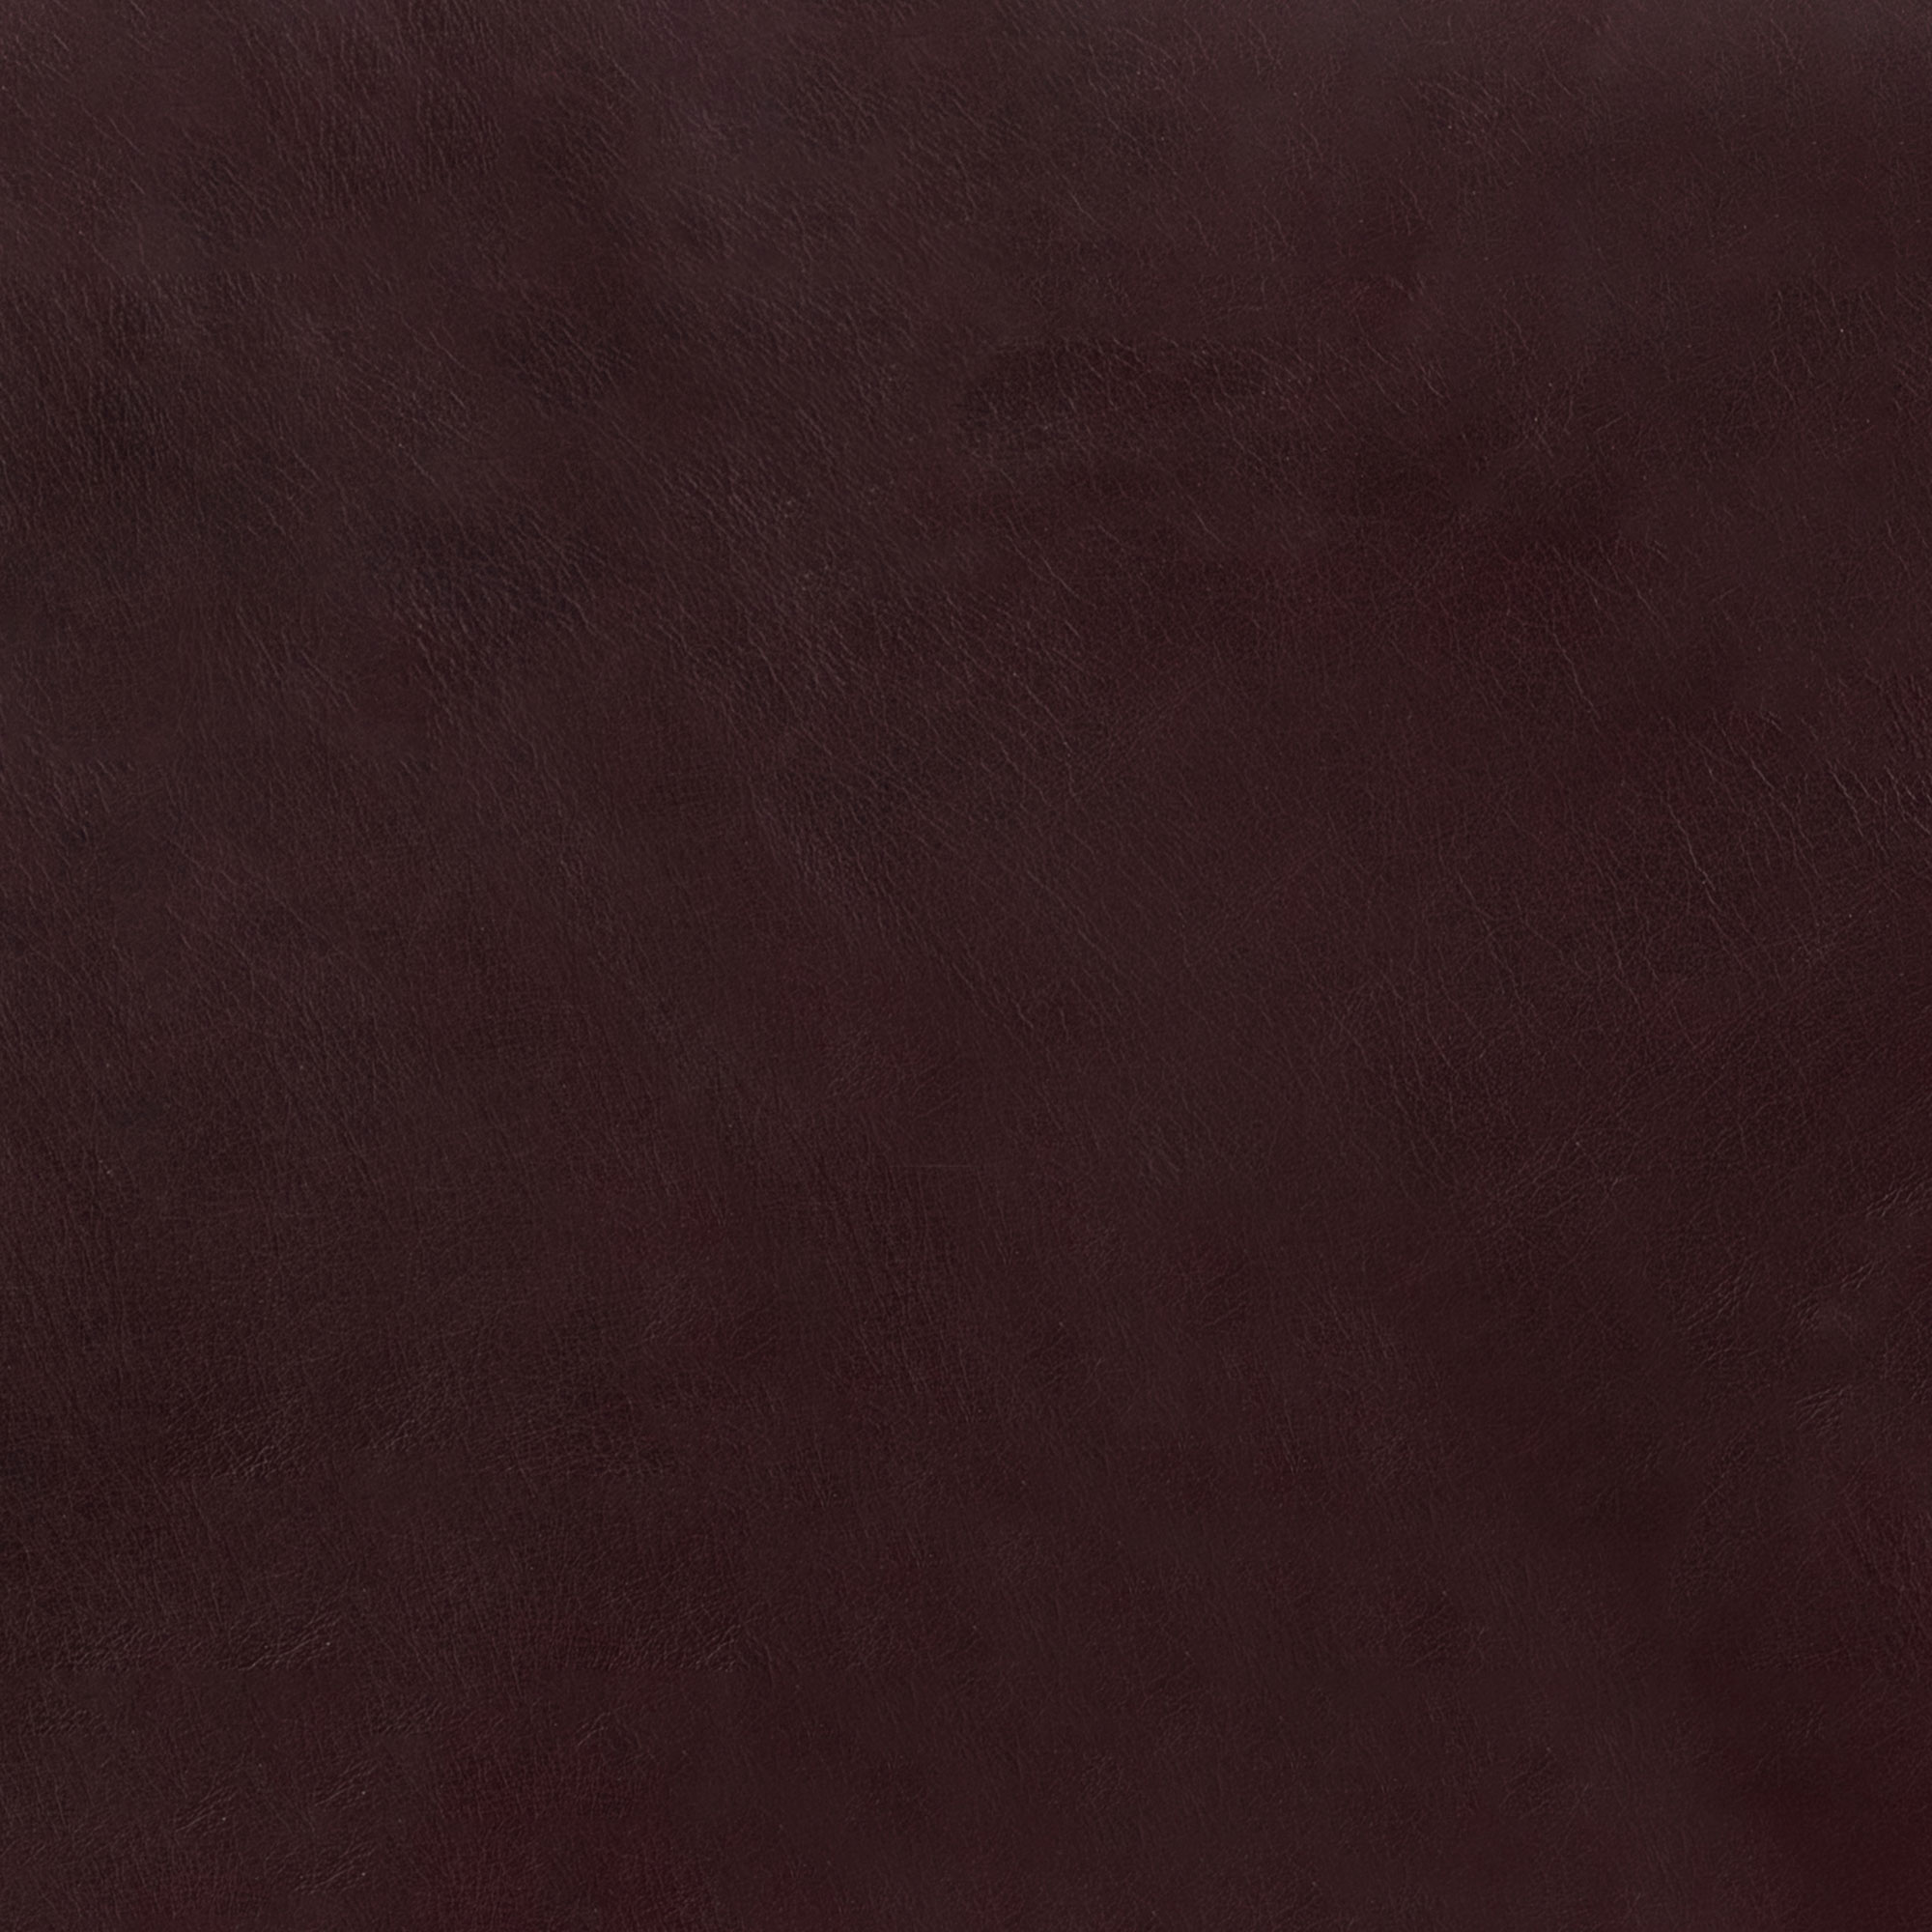 Eternity Maroon Leather Swatch